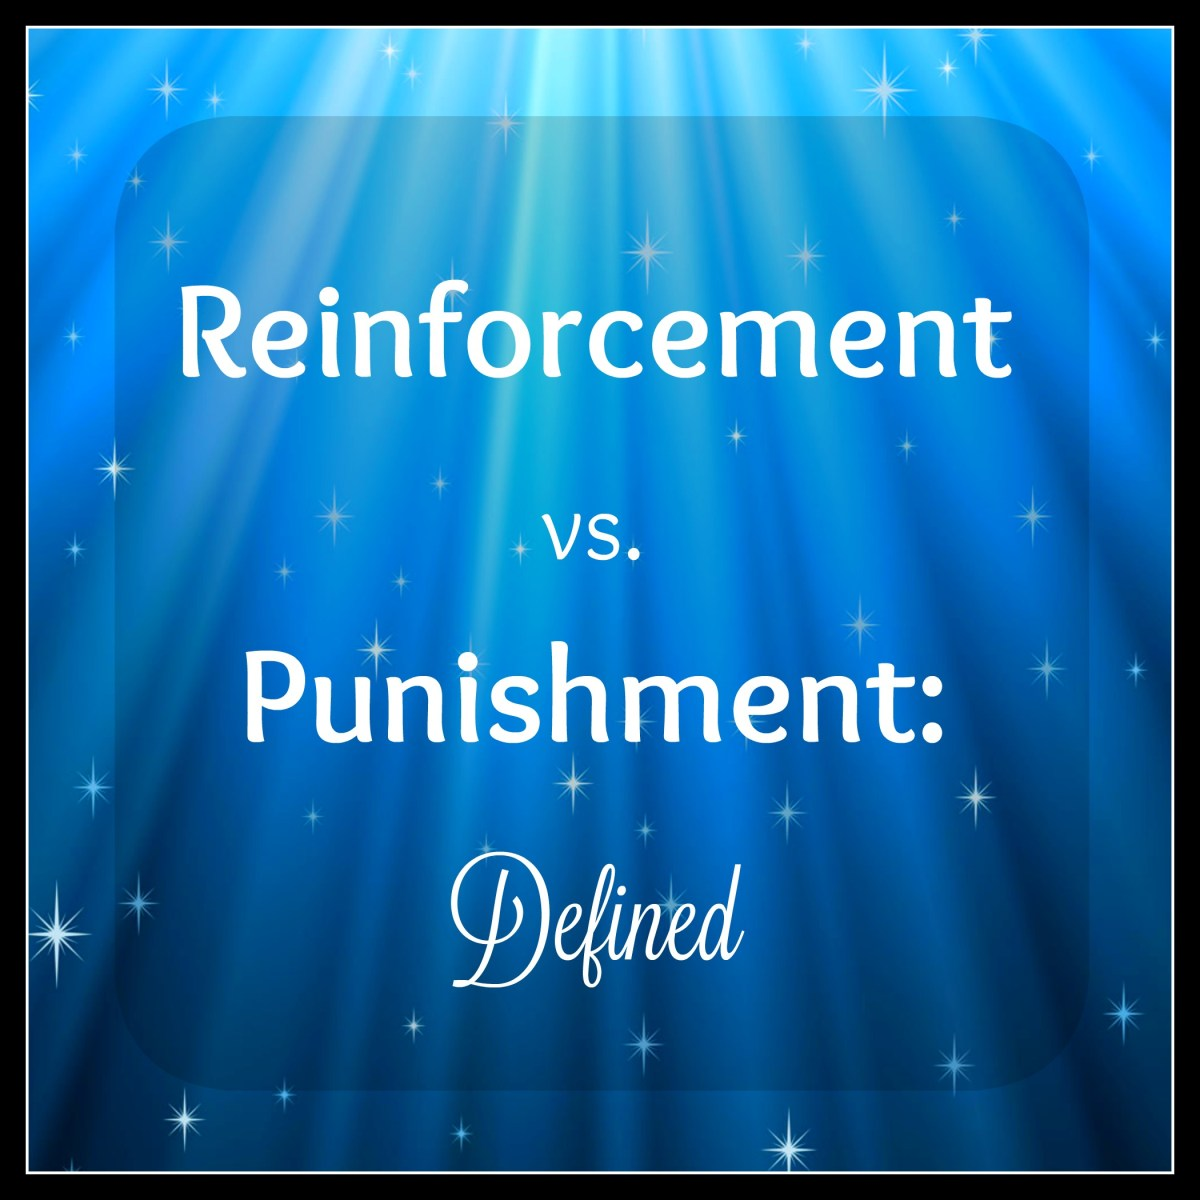 Reinforcement vs. Punishment: Defined